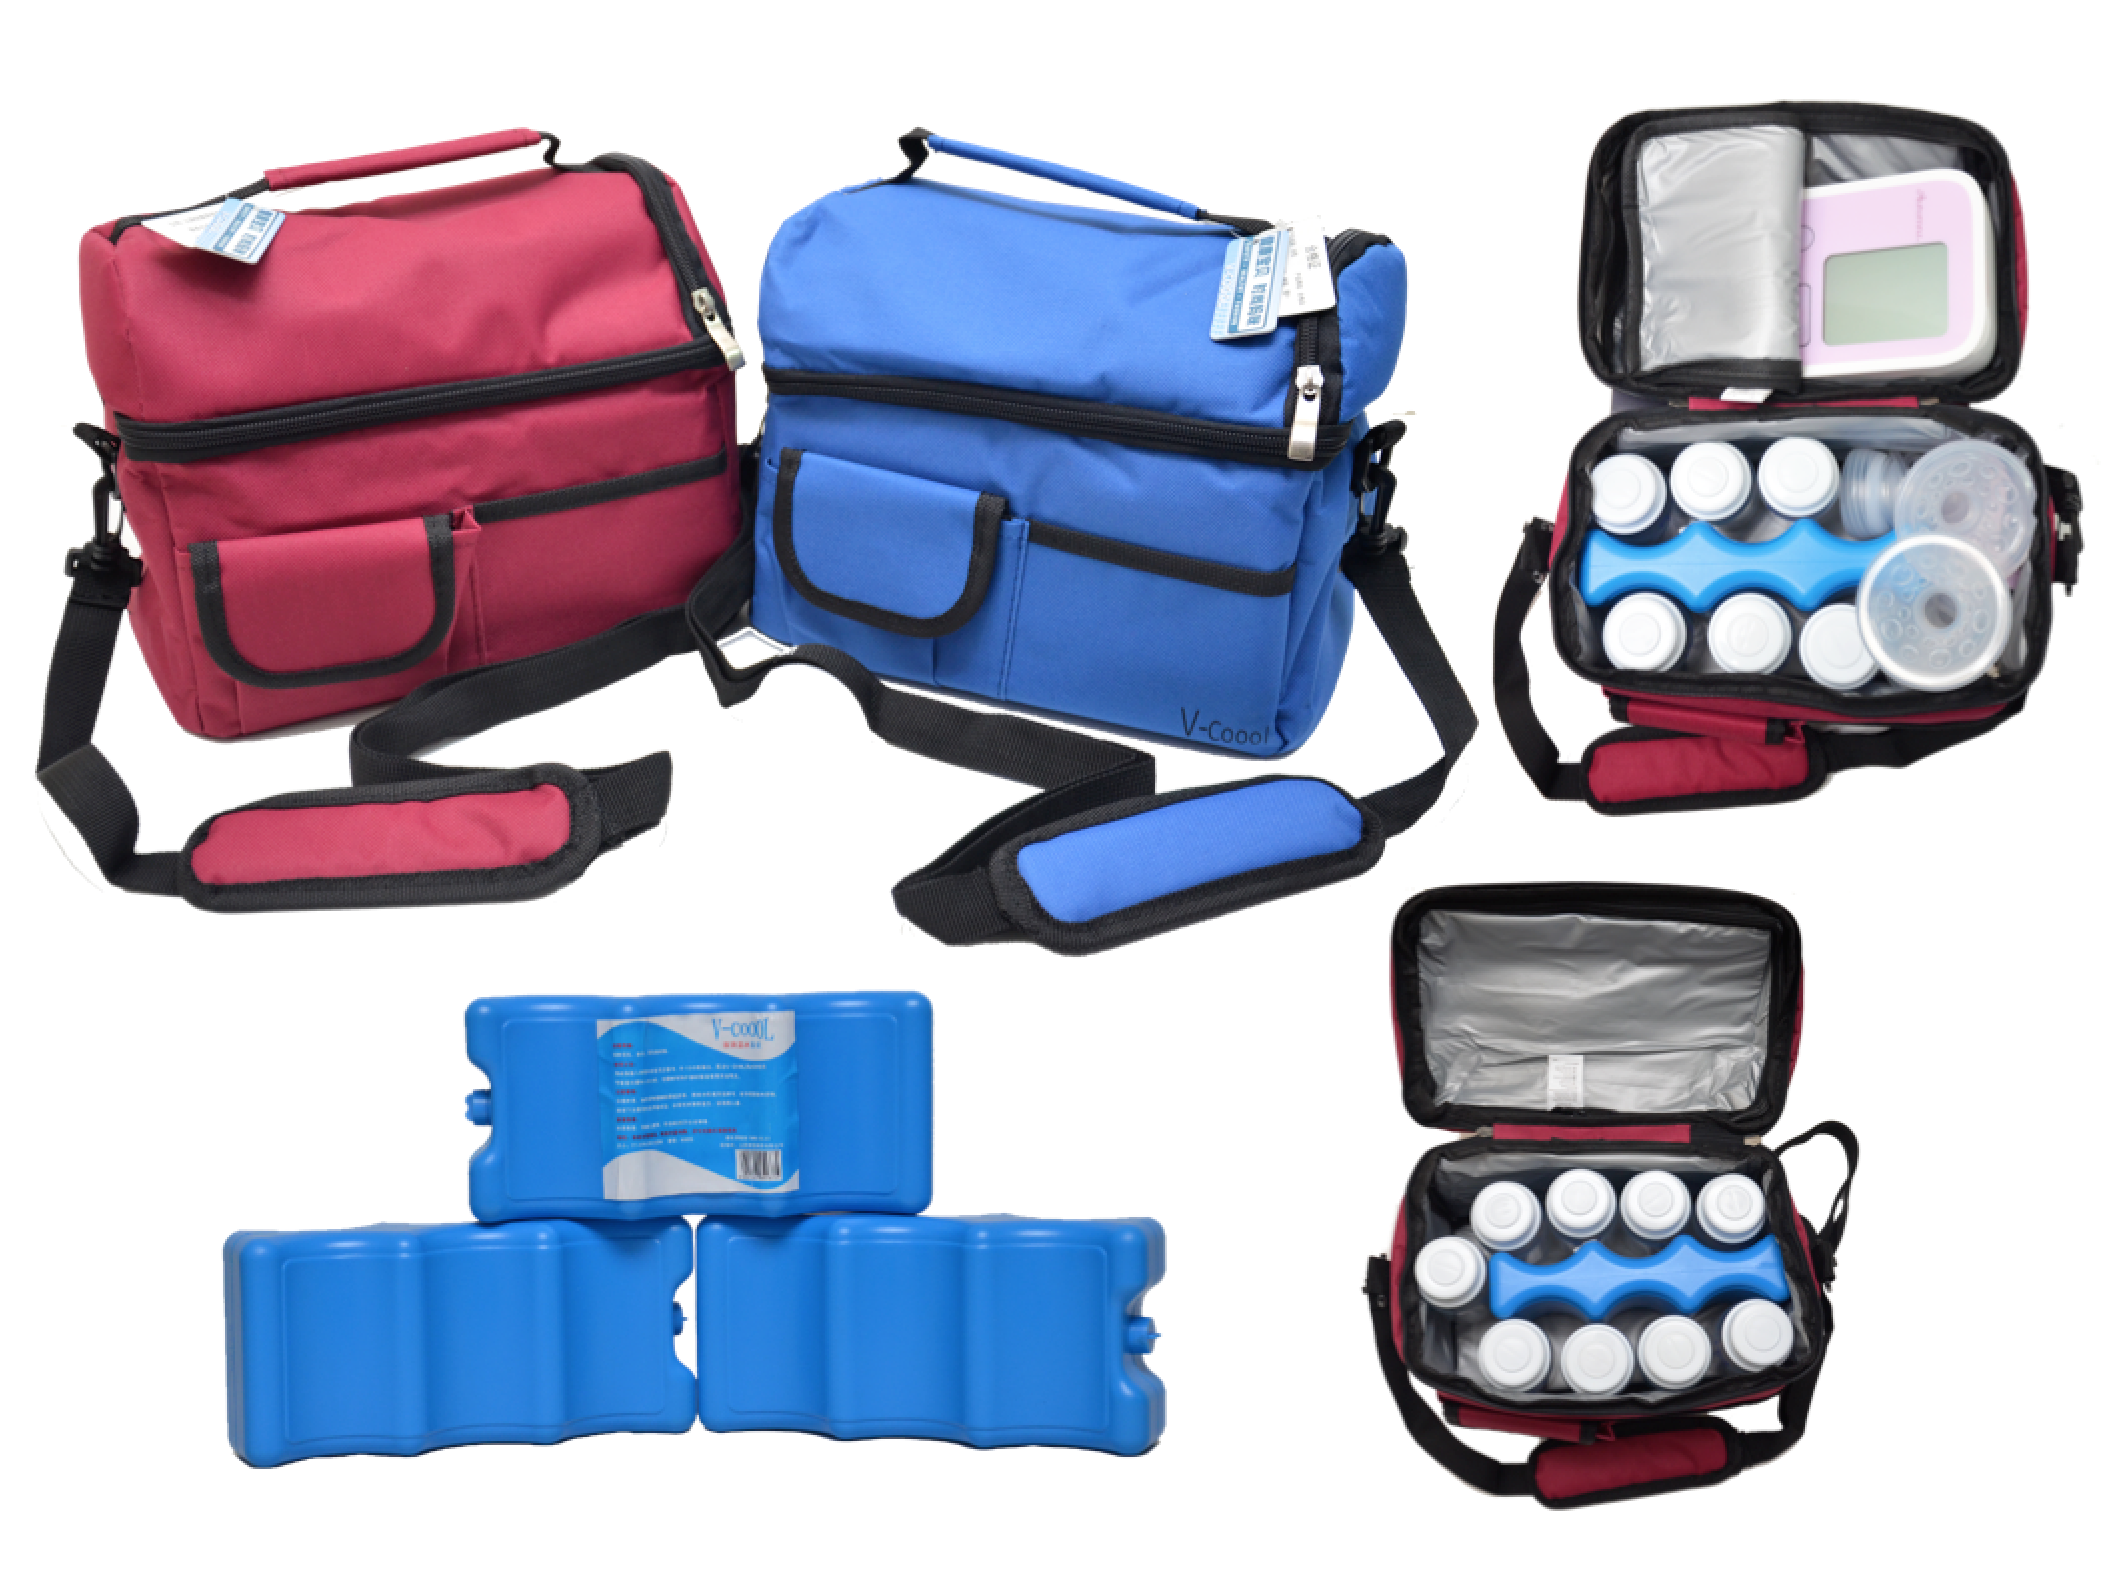 Pumponthego Combo V Cool Cooler Bag And Ice Brick